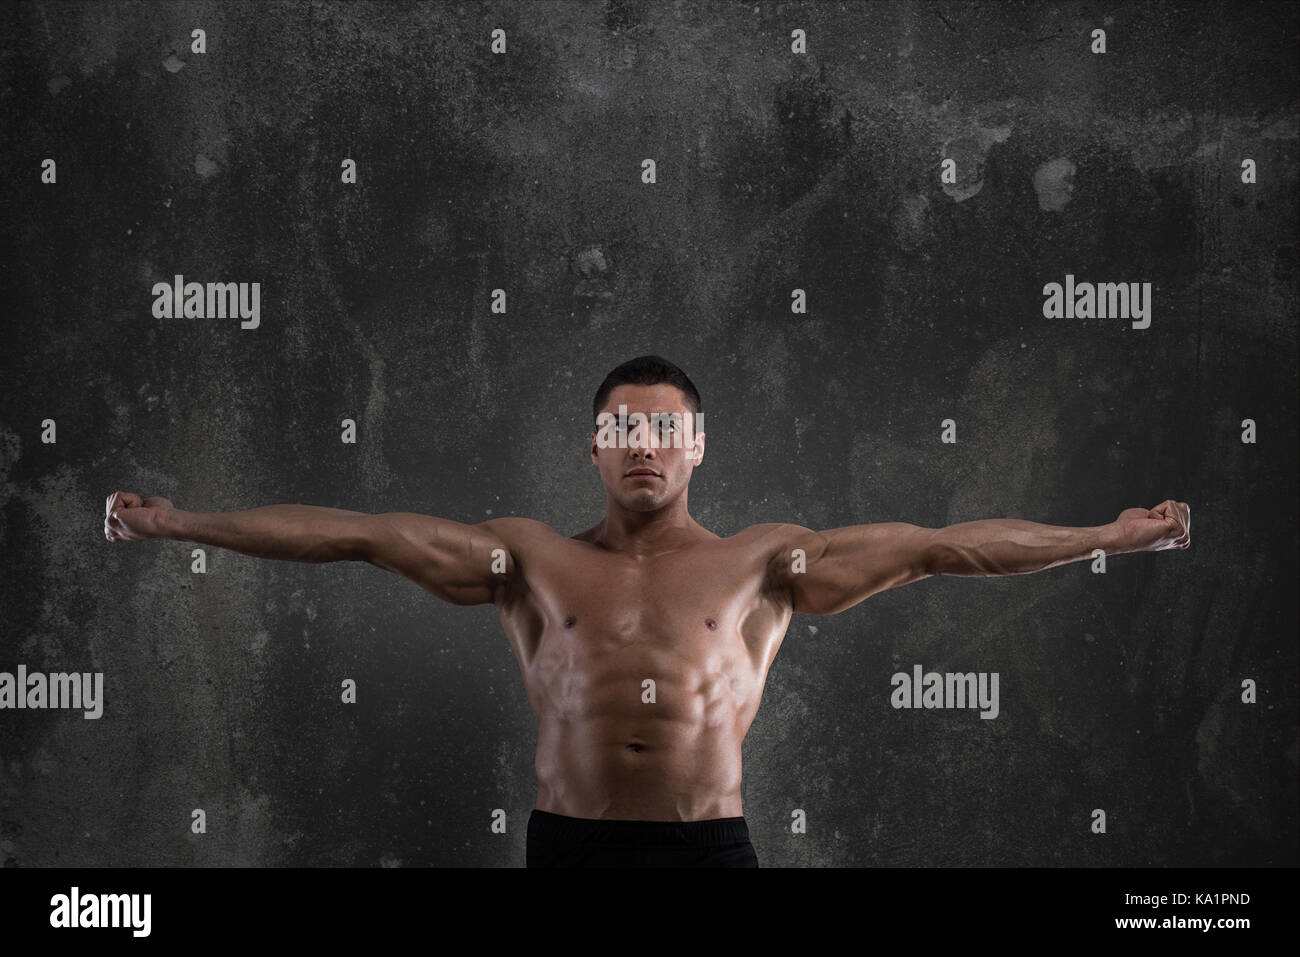 Muscular of a body building trainer - Stock Image